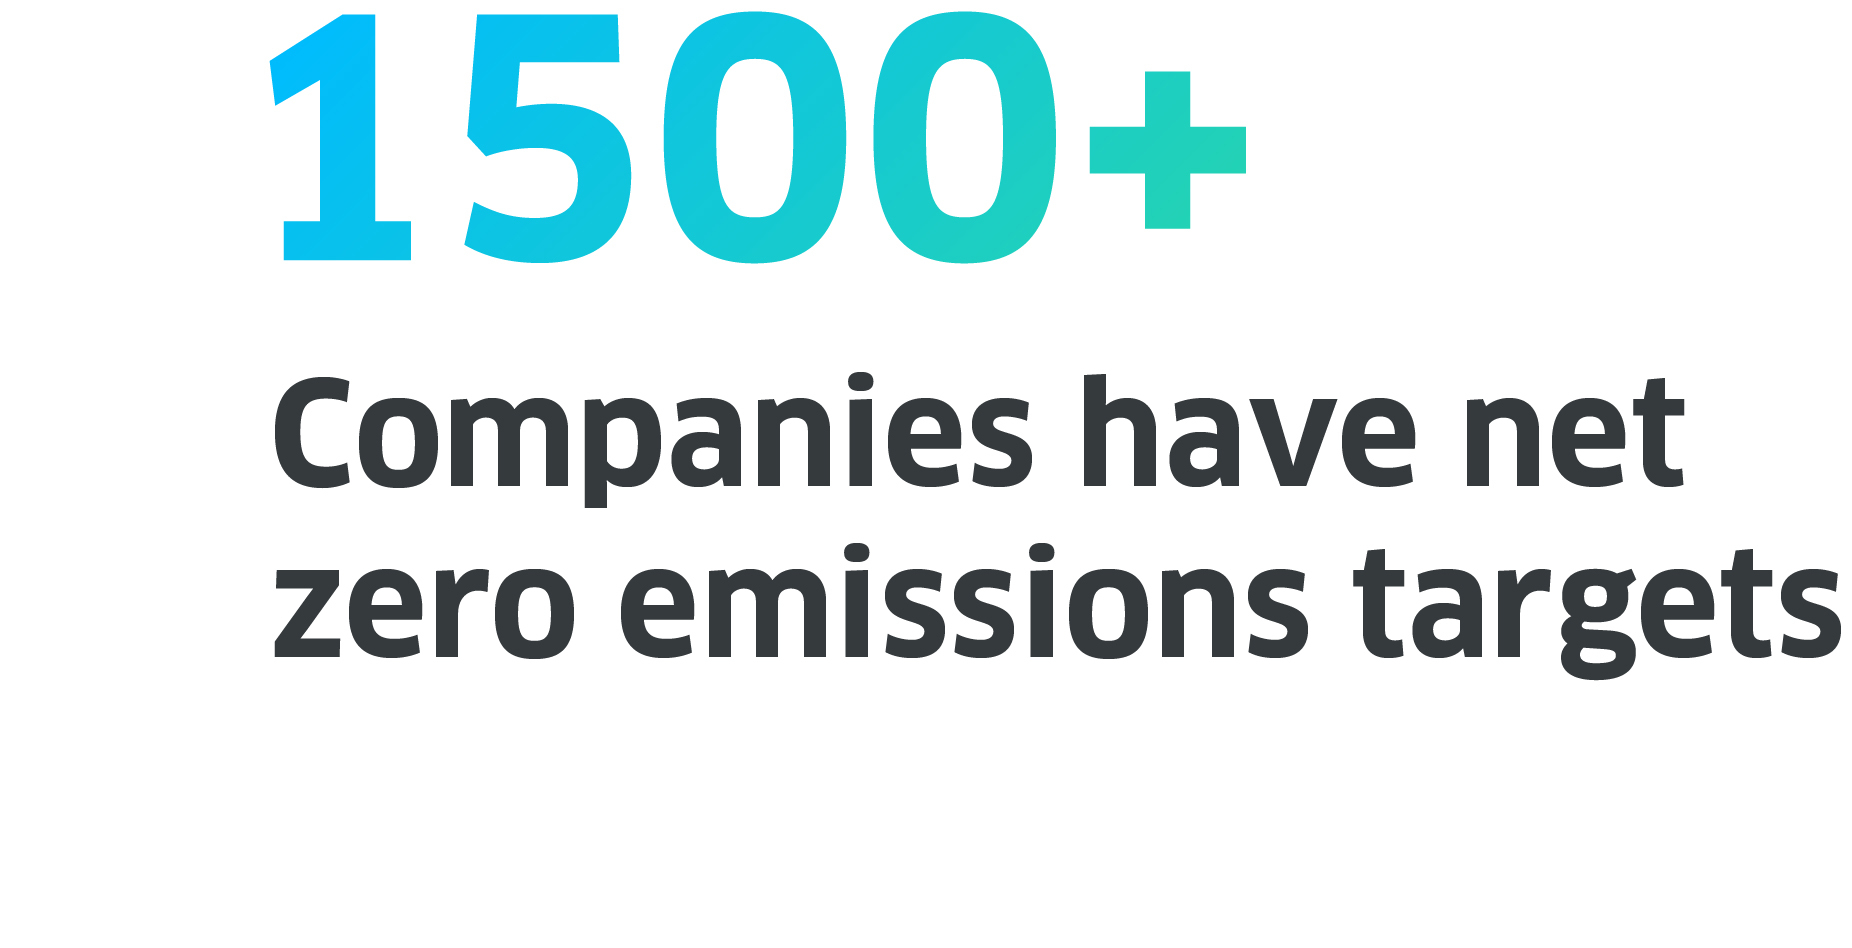 1500+ companies have net zero emissions targets